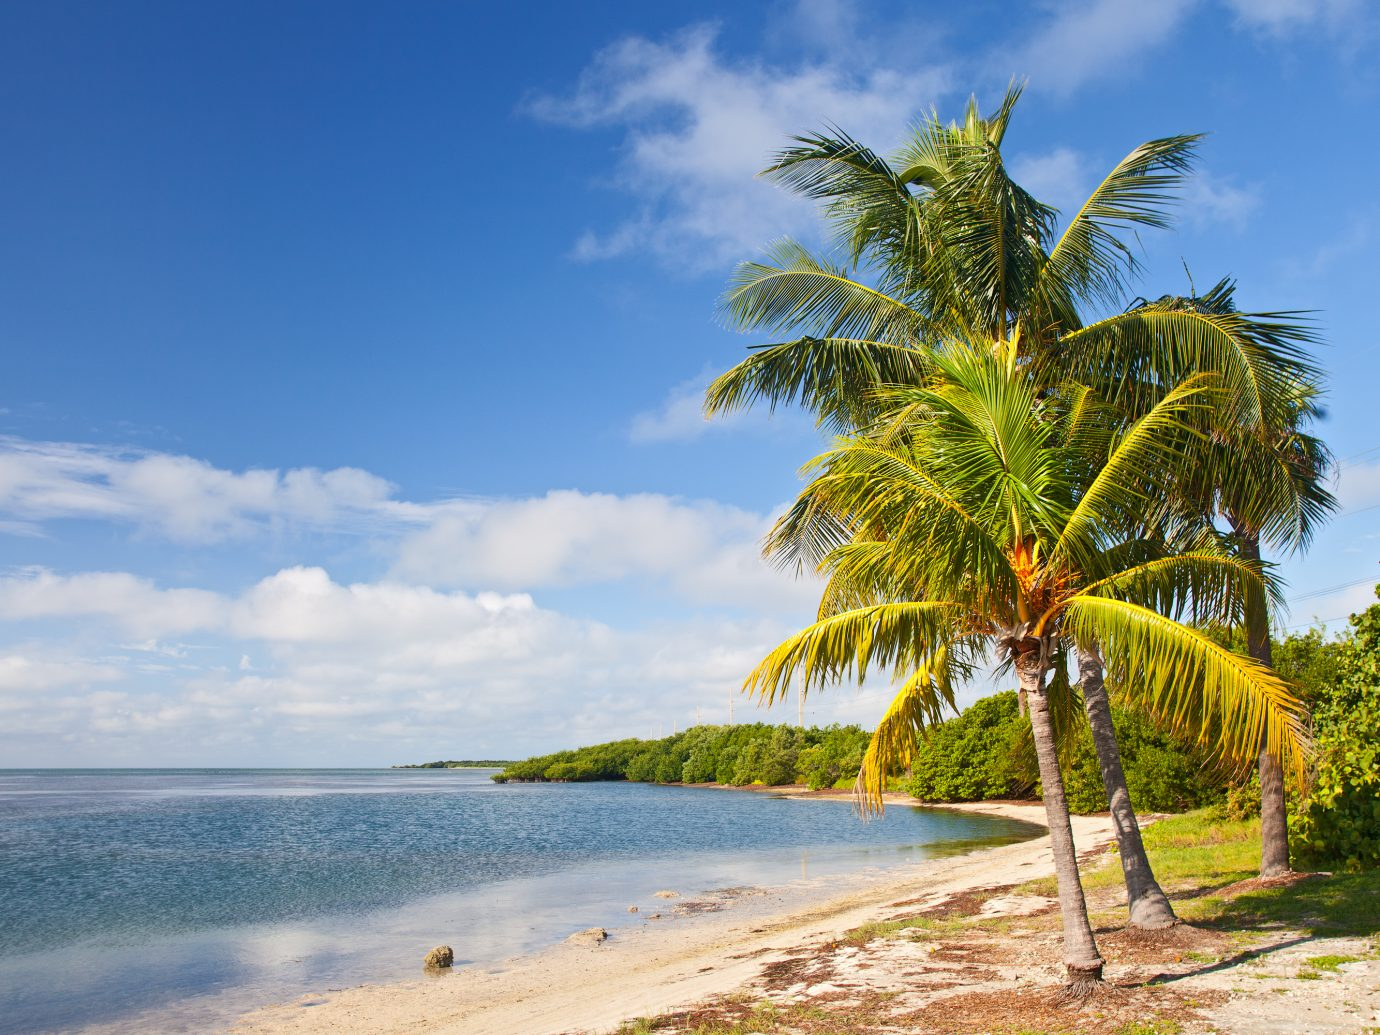 Palm trees, ocean and blue sky on a tropical beach in Florida keys near famous tourist destination Key West